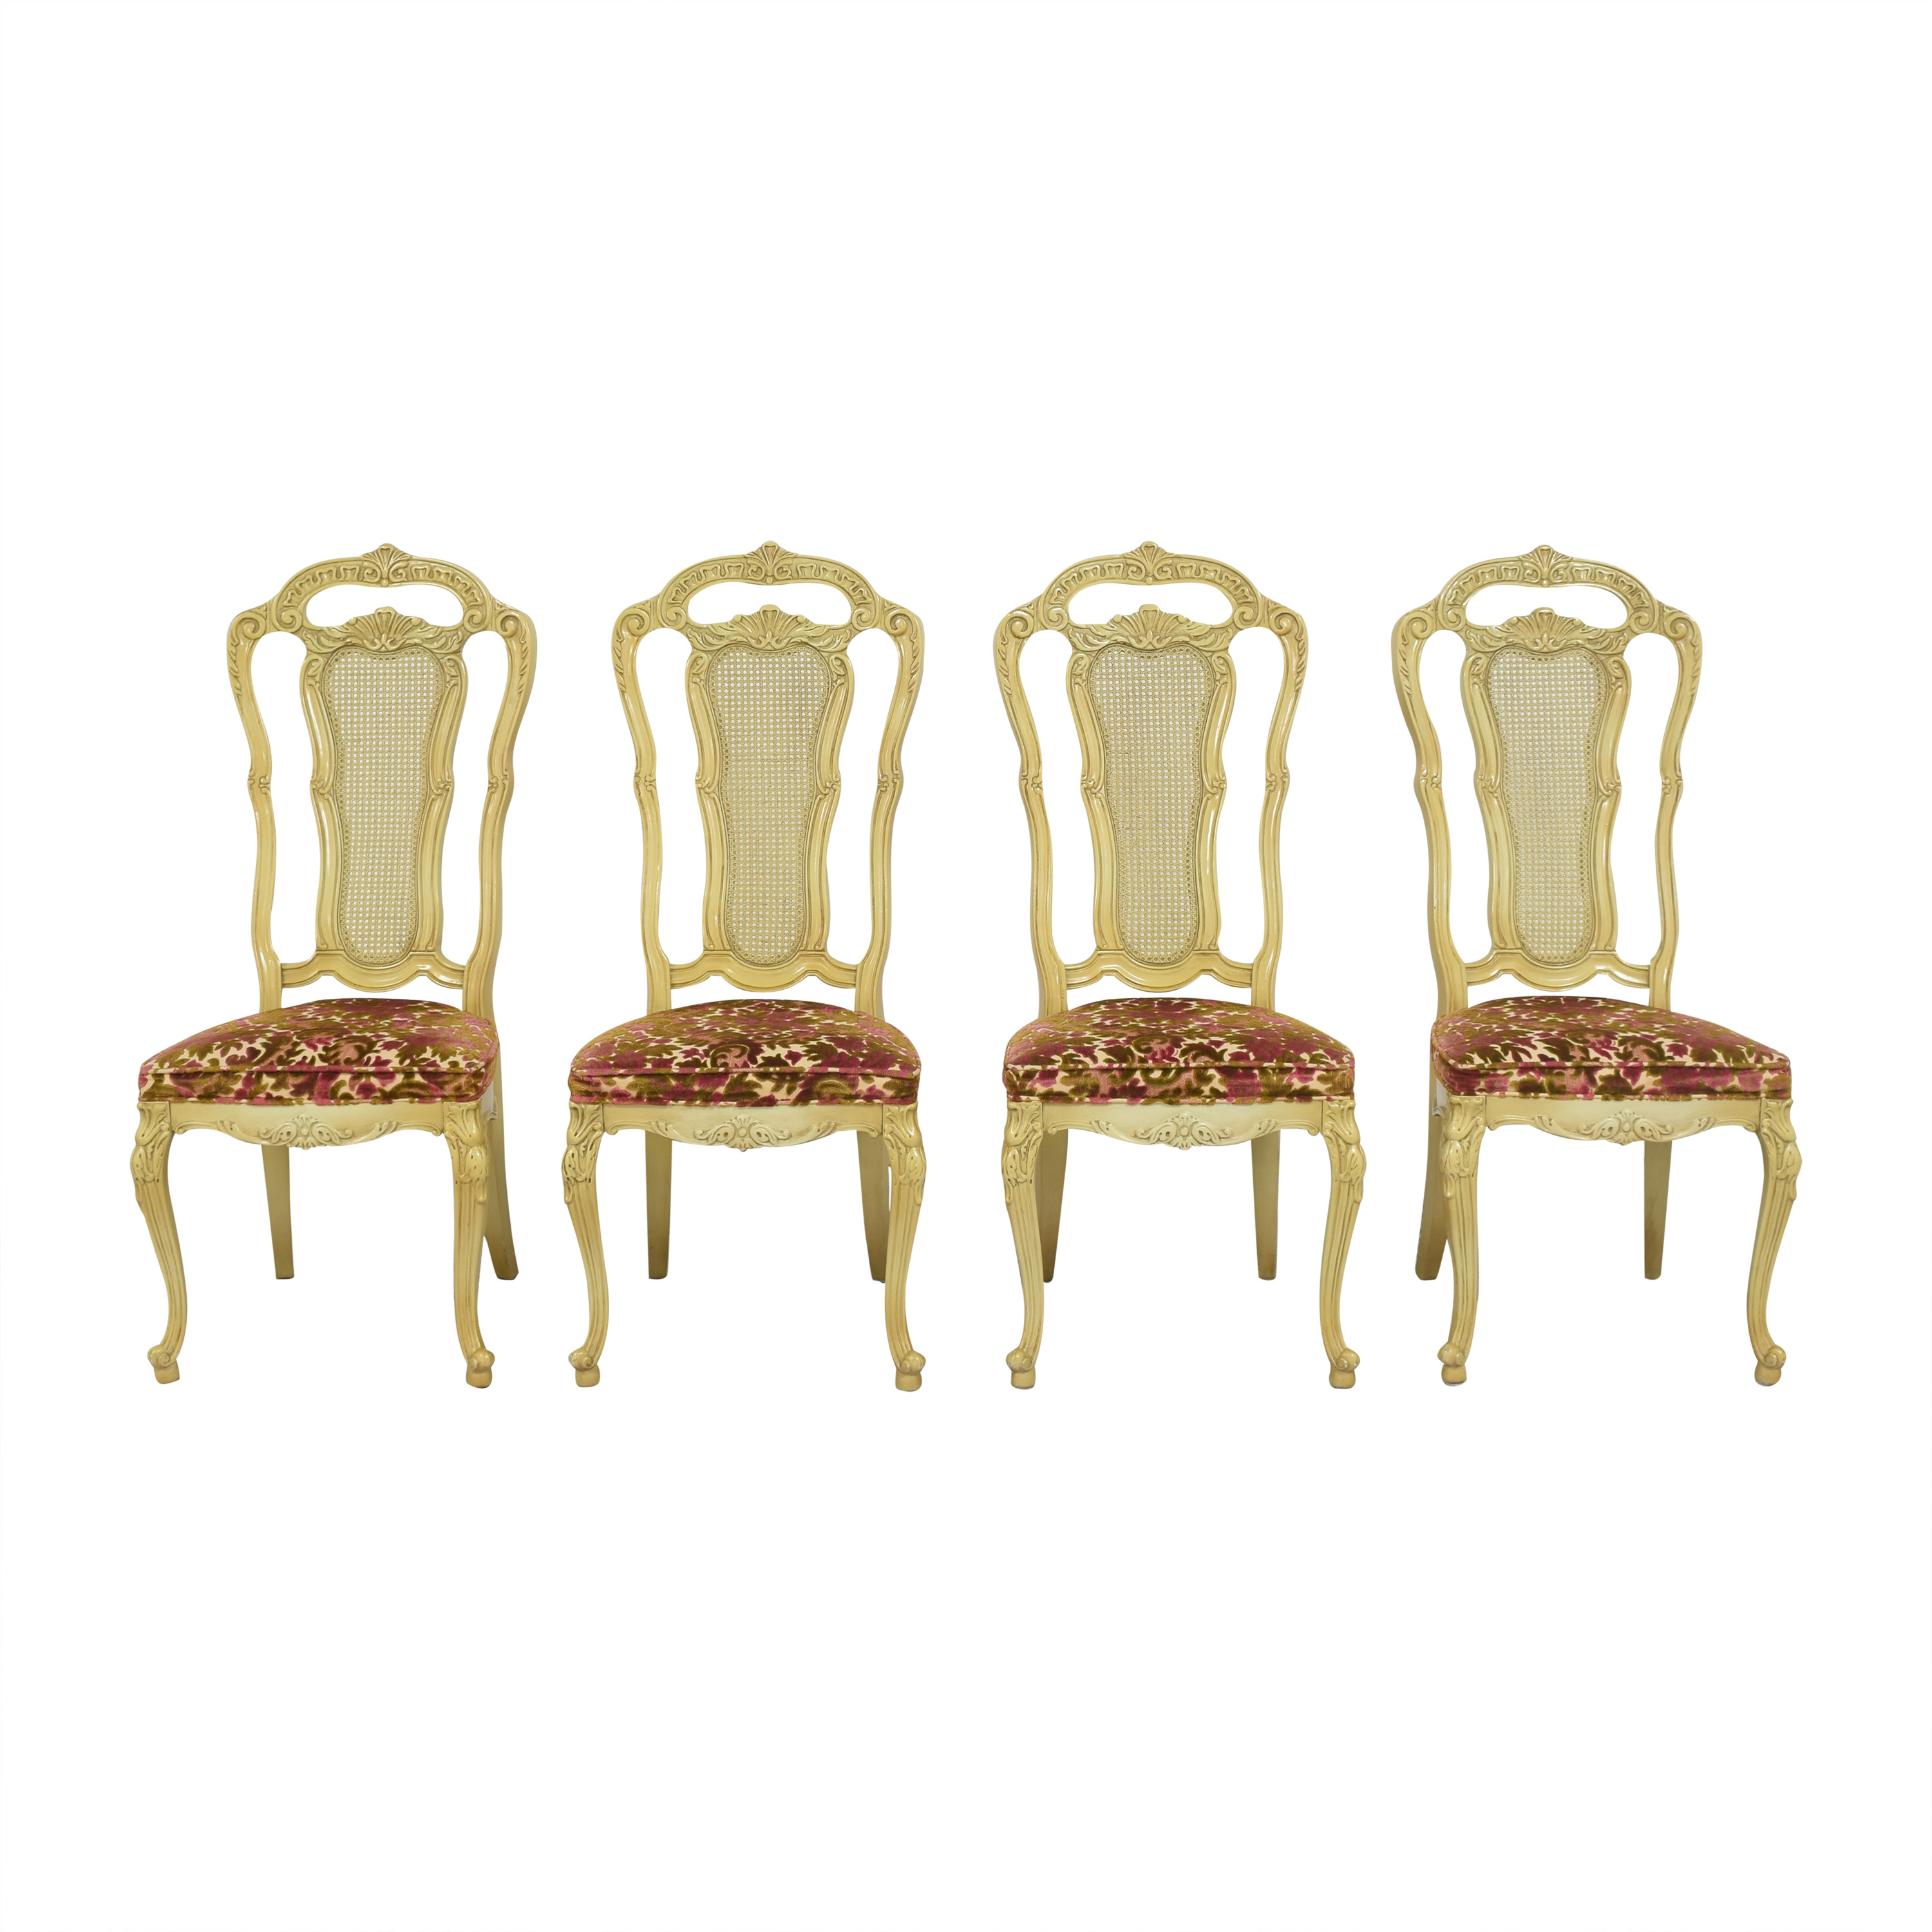 Union Furniture Company  Union Furniture Company French Provincial Dining Chairs on sale